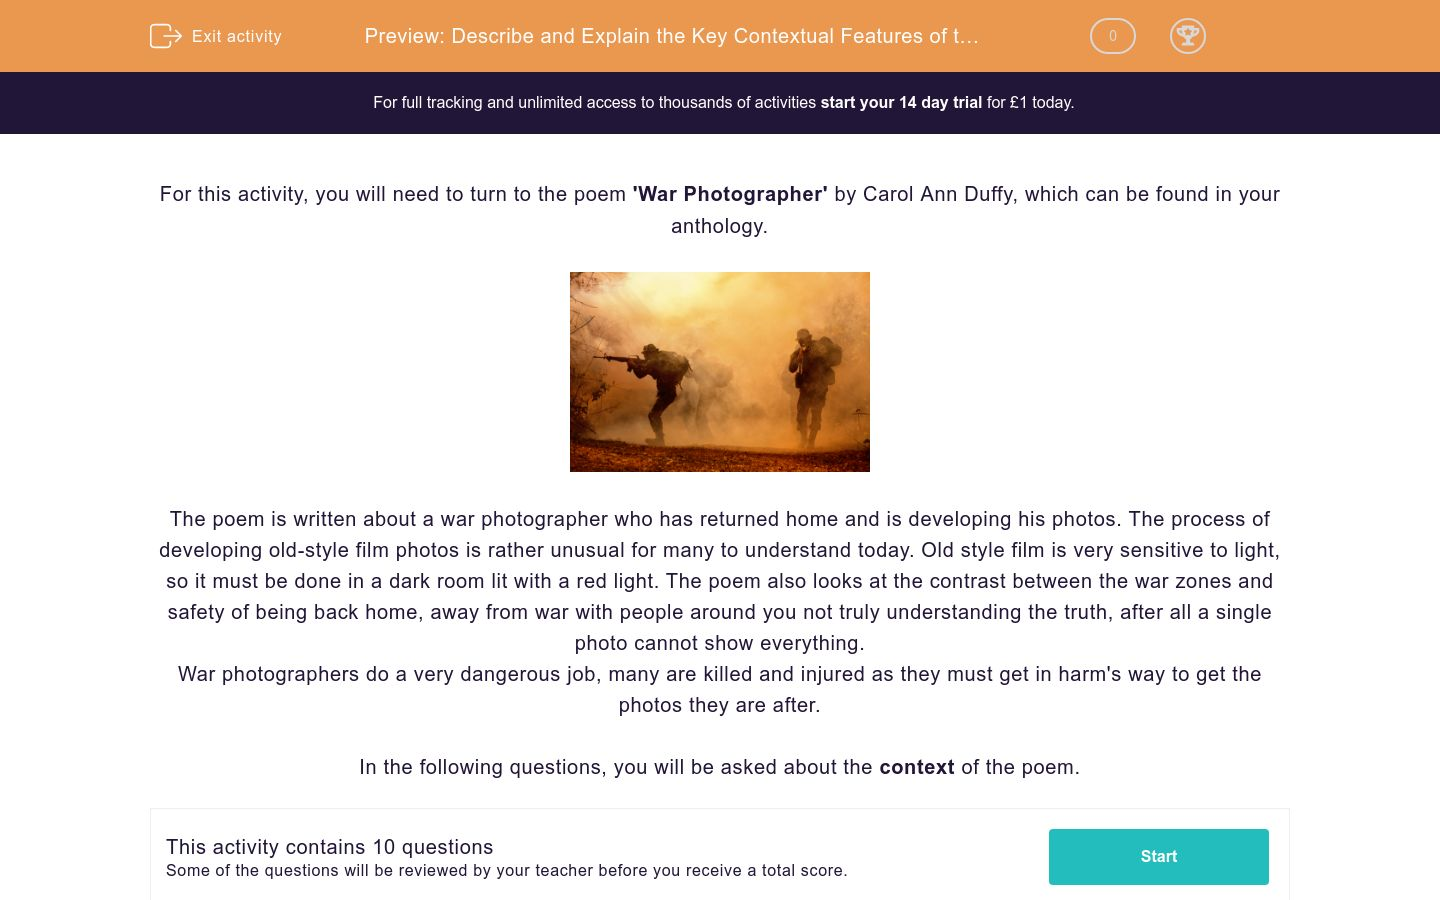 'Describe and Explain the Key Contextual Features of the Poem 'War Photographer' by Carol Ann Duffy' worksheet